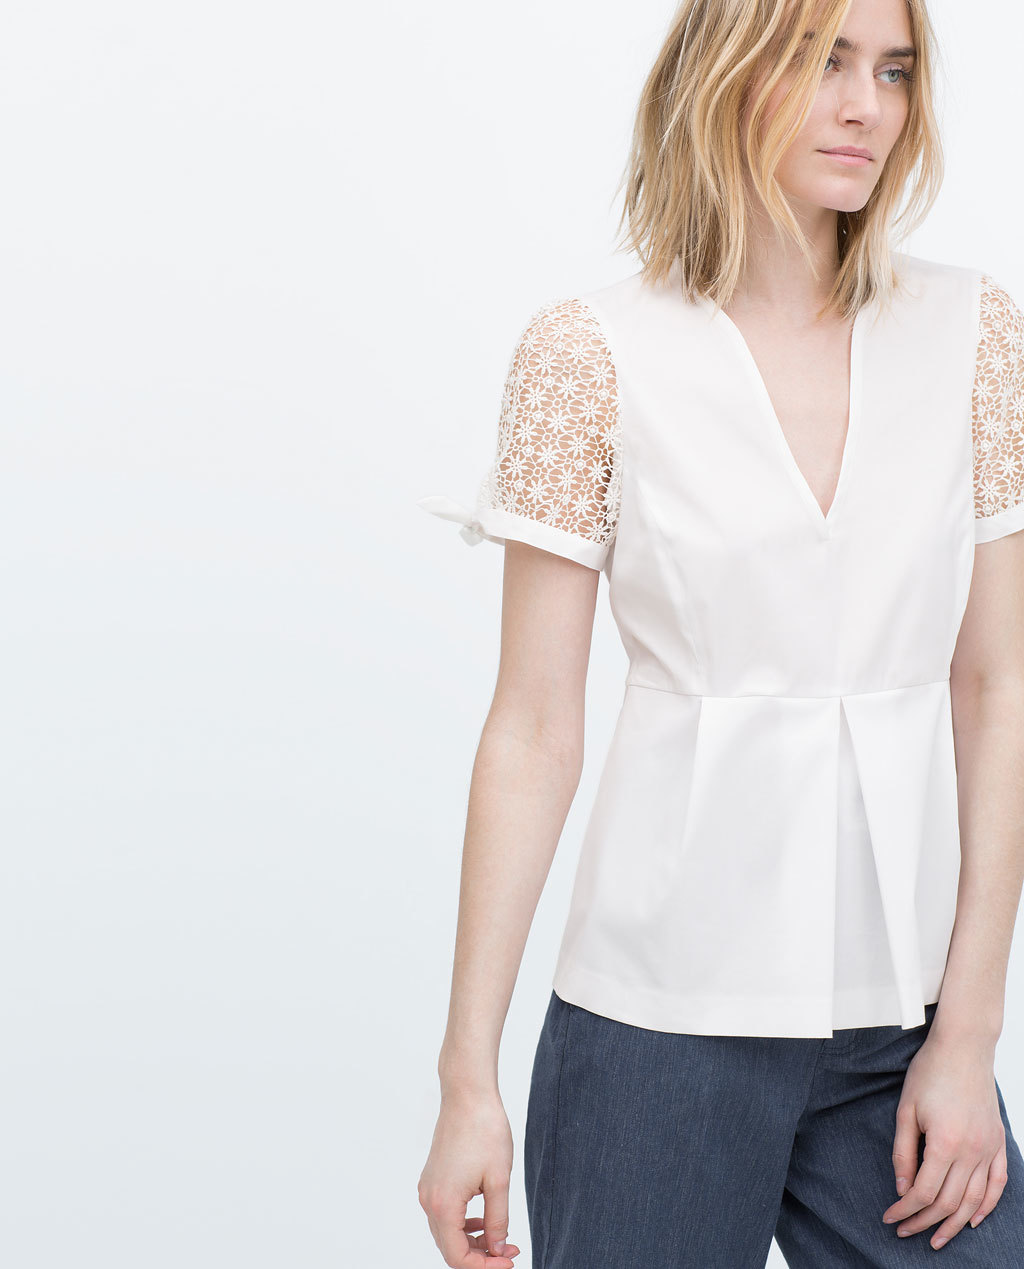 Guipure Lace Poplin Peplum Top - neckline: v-neck; pattern: plain; waist detail: peplum waist detail; predominant colour: white; occasions: casual, work, occasion; length: standard; style: top; fibres: cotton - stretch; fit: tailored/fitted; sleeve length: short sleeve; sleeve style: standard; texture group: cotton feel fabrics; pattern type: fabric; embellishment: lace; season: s/s 2015